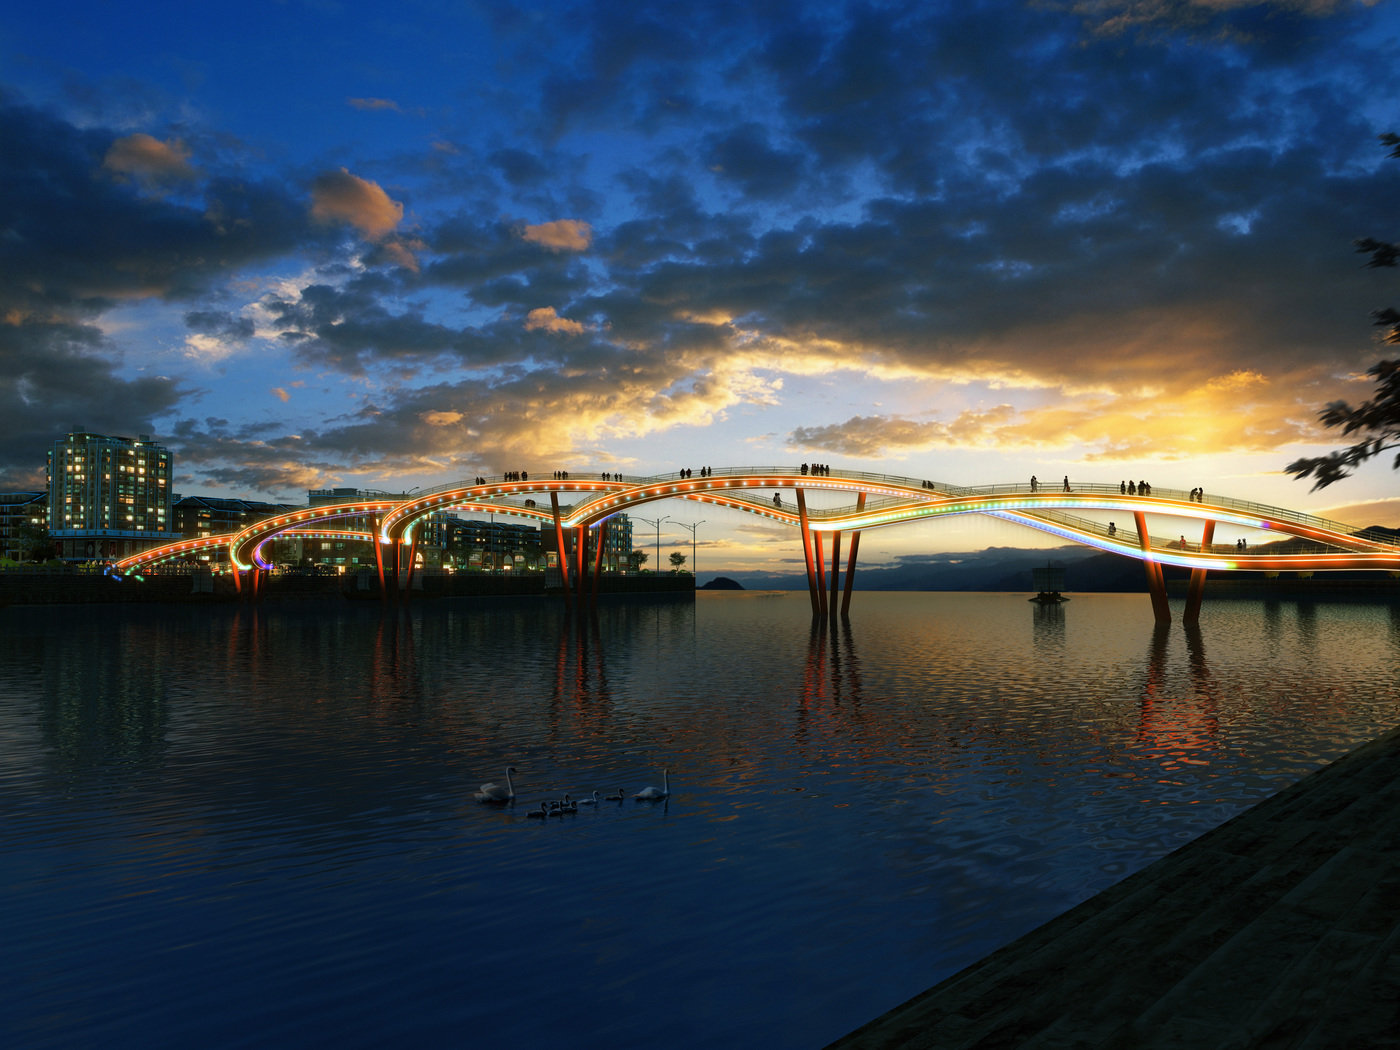 Xinjin County Landscape Bridge